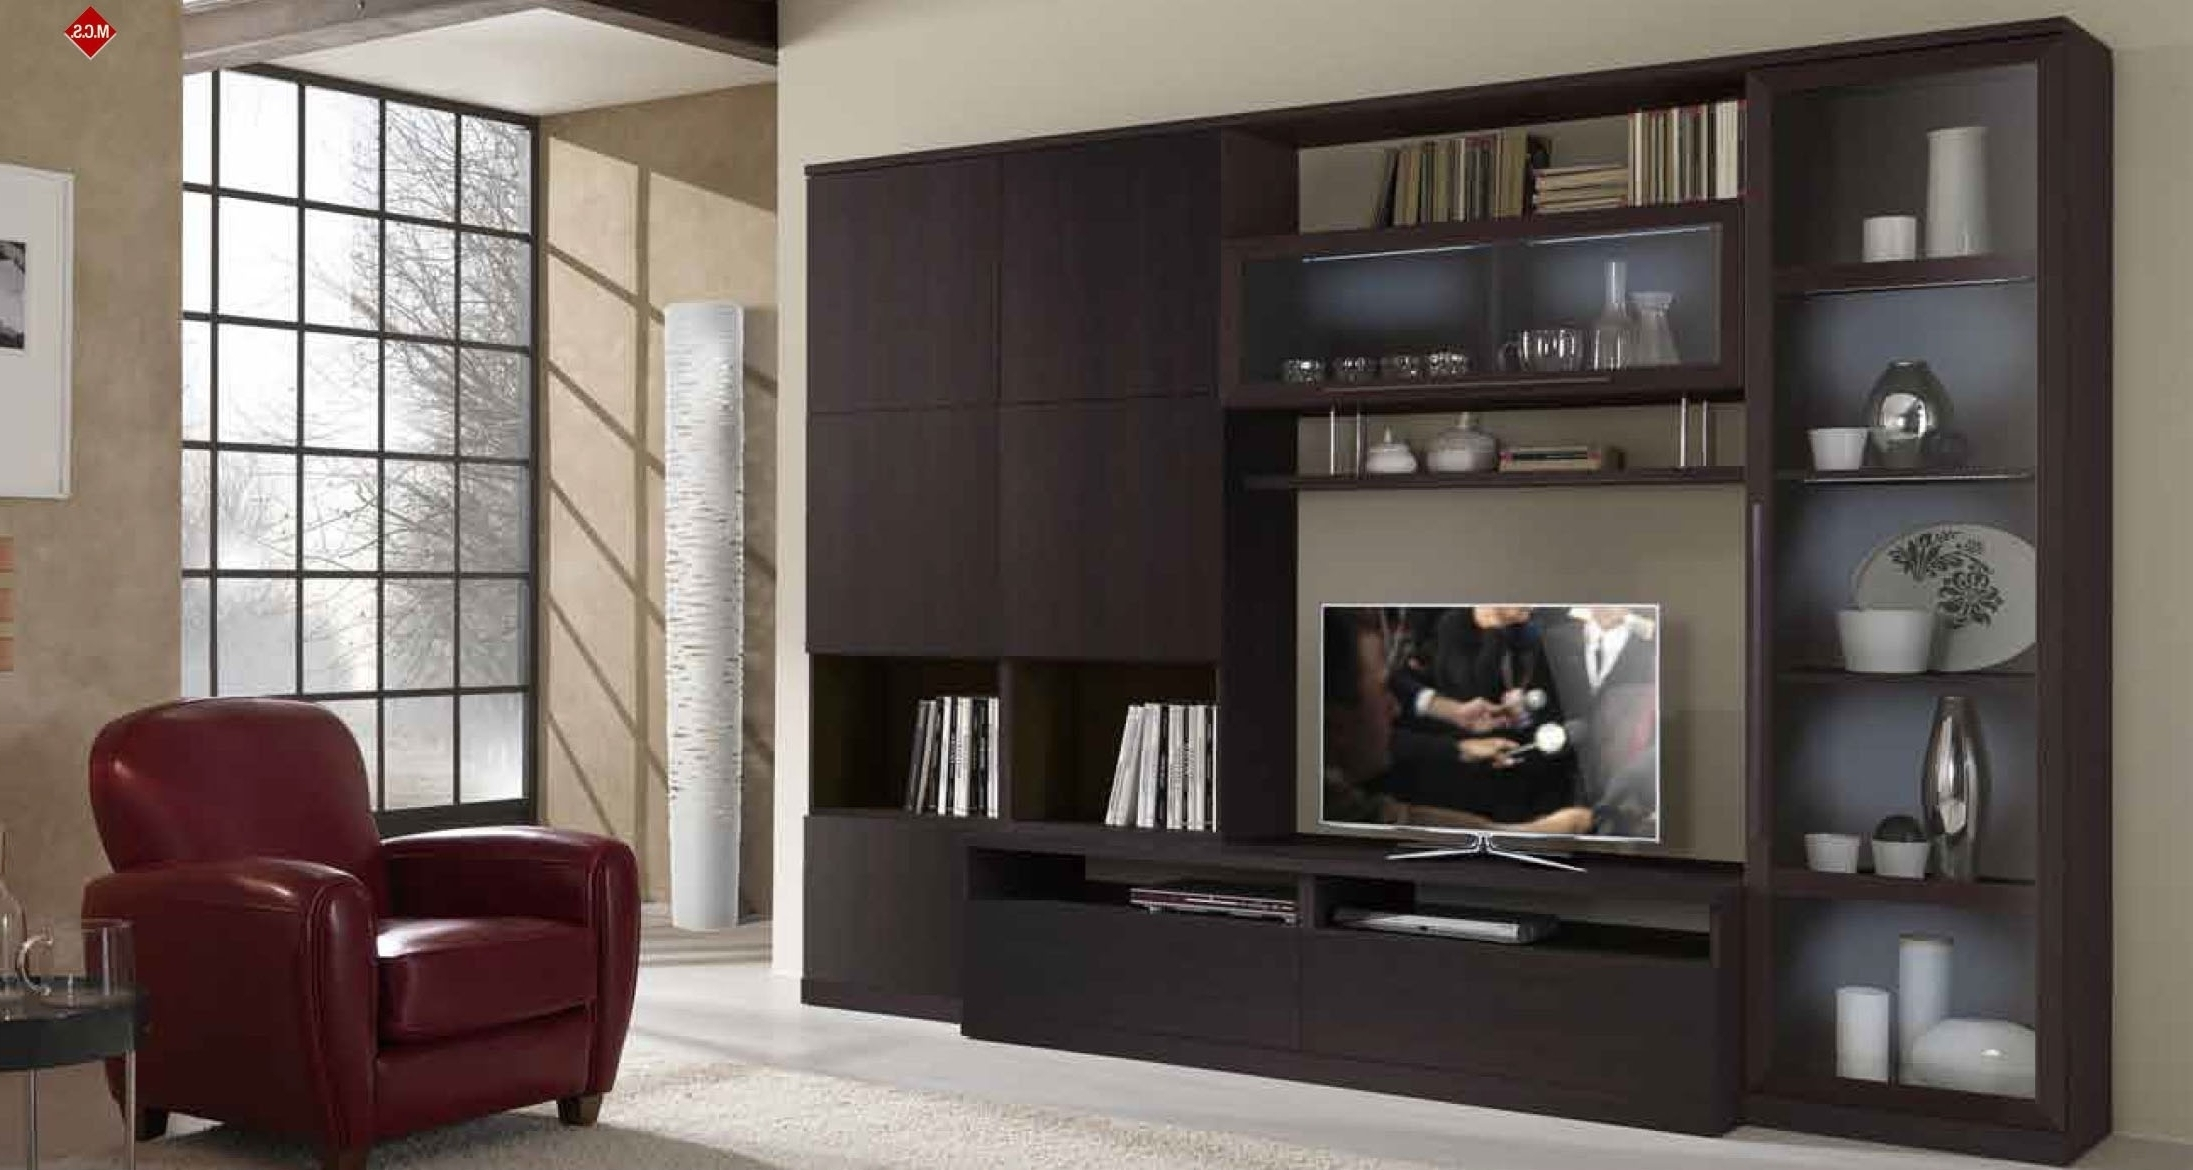 Living Room Wall Unit 2018 Latest Wall Units For Living Room